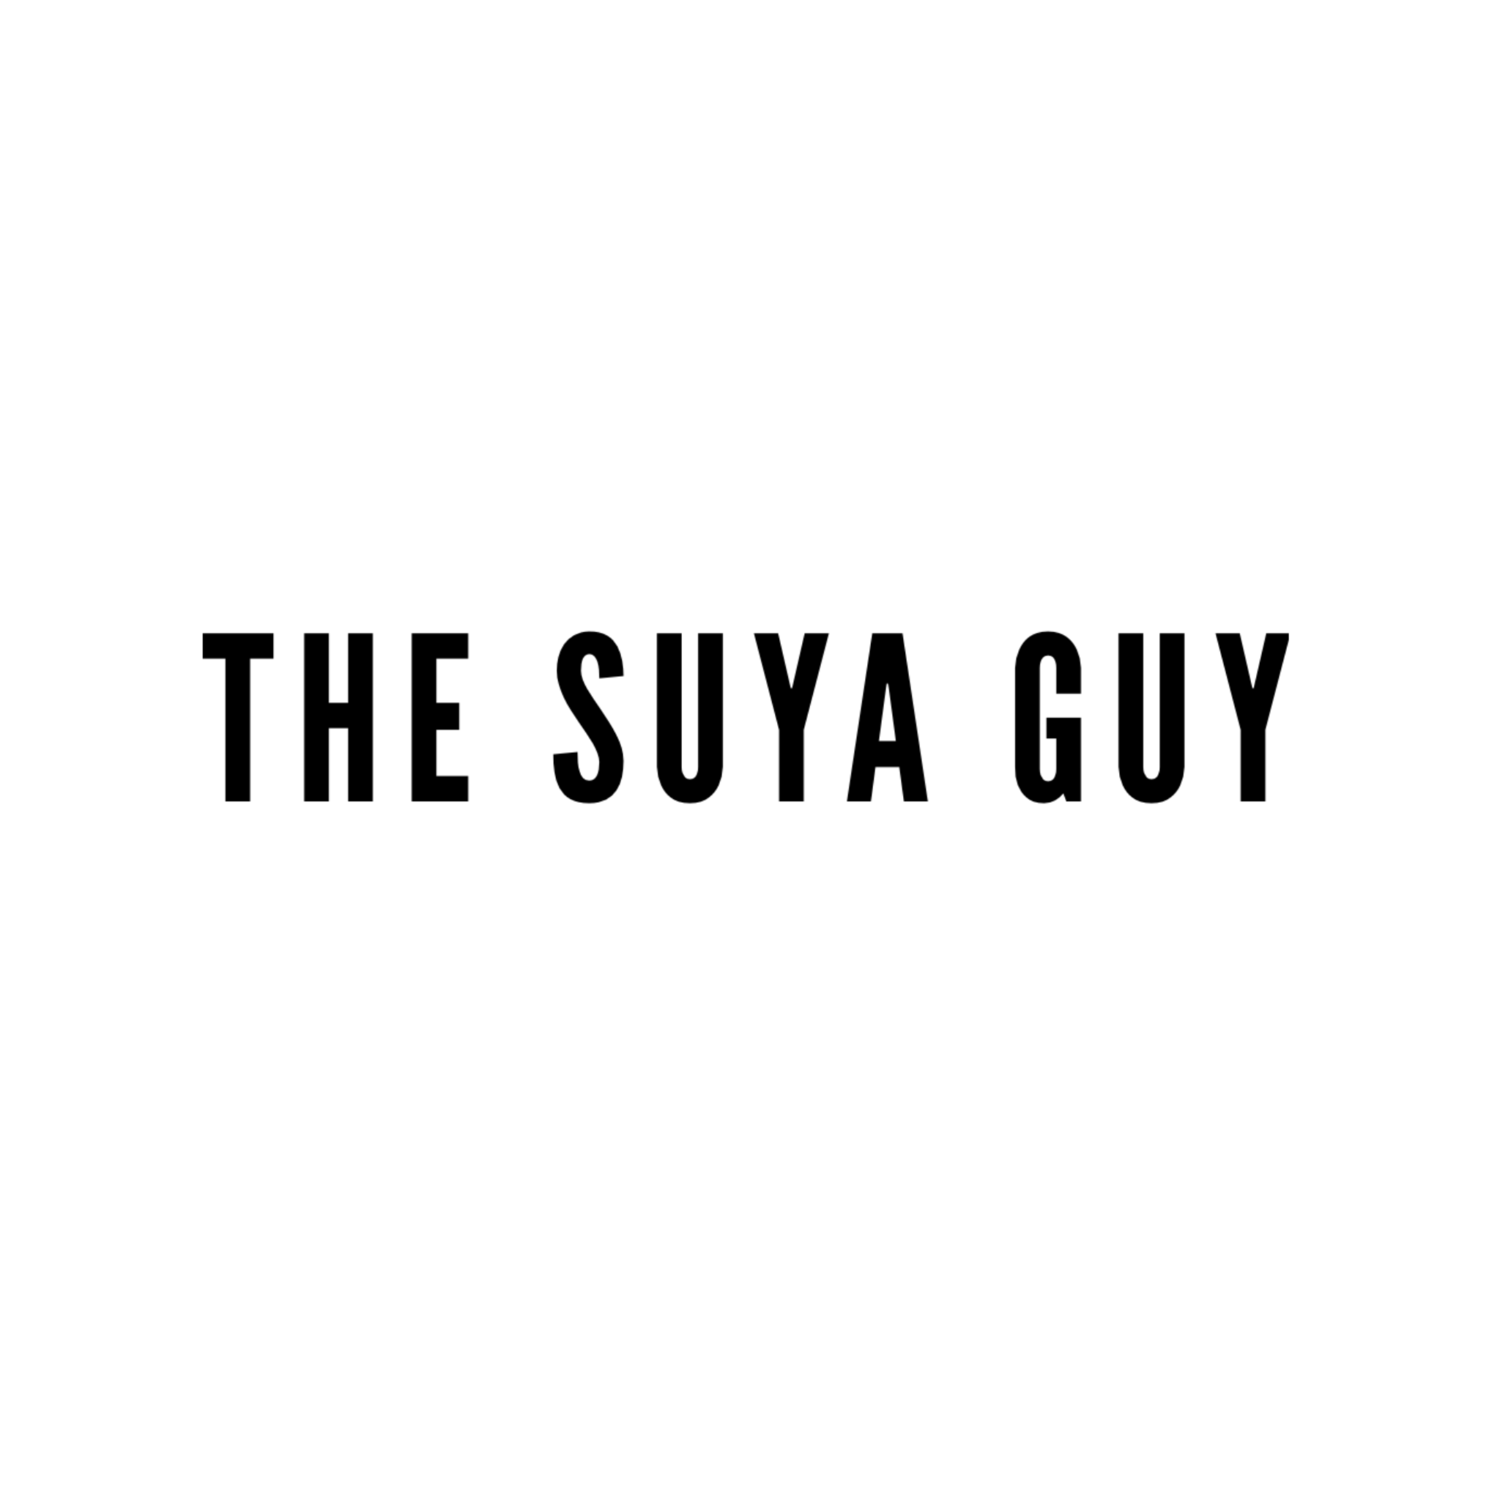 The Suya Guy